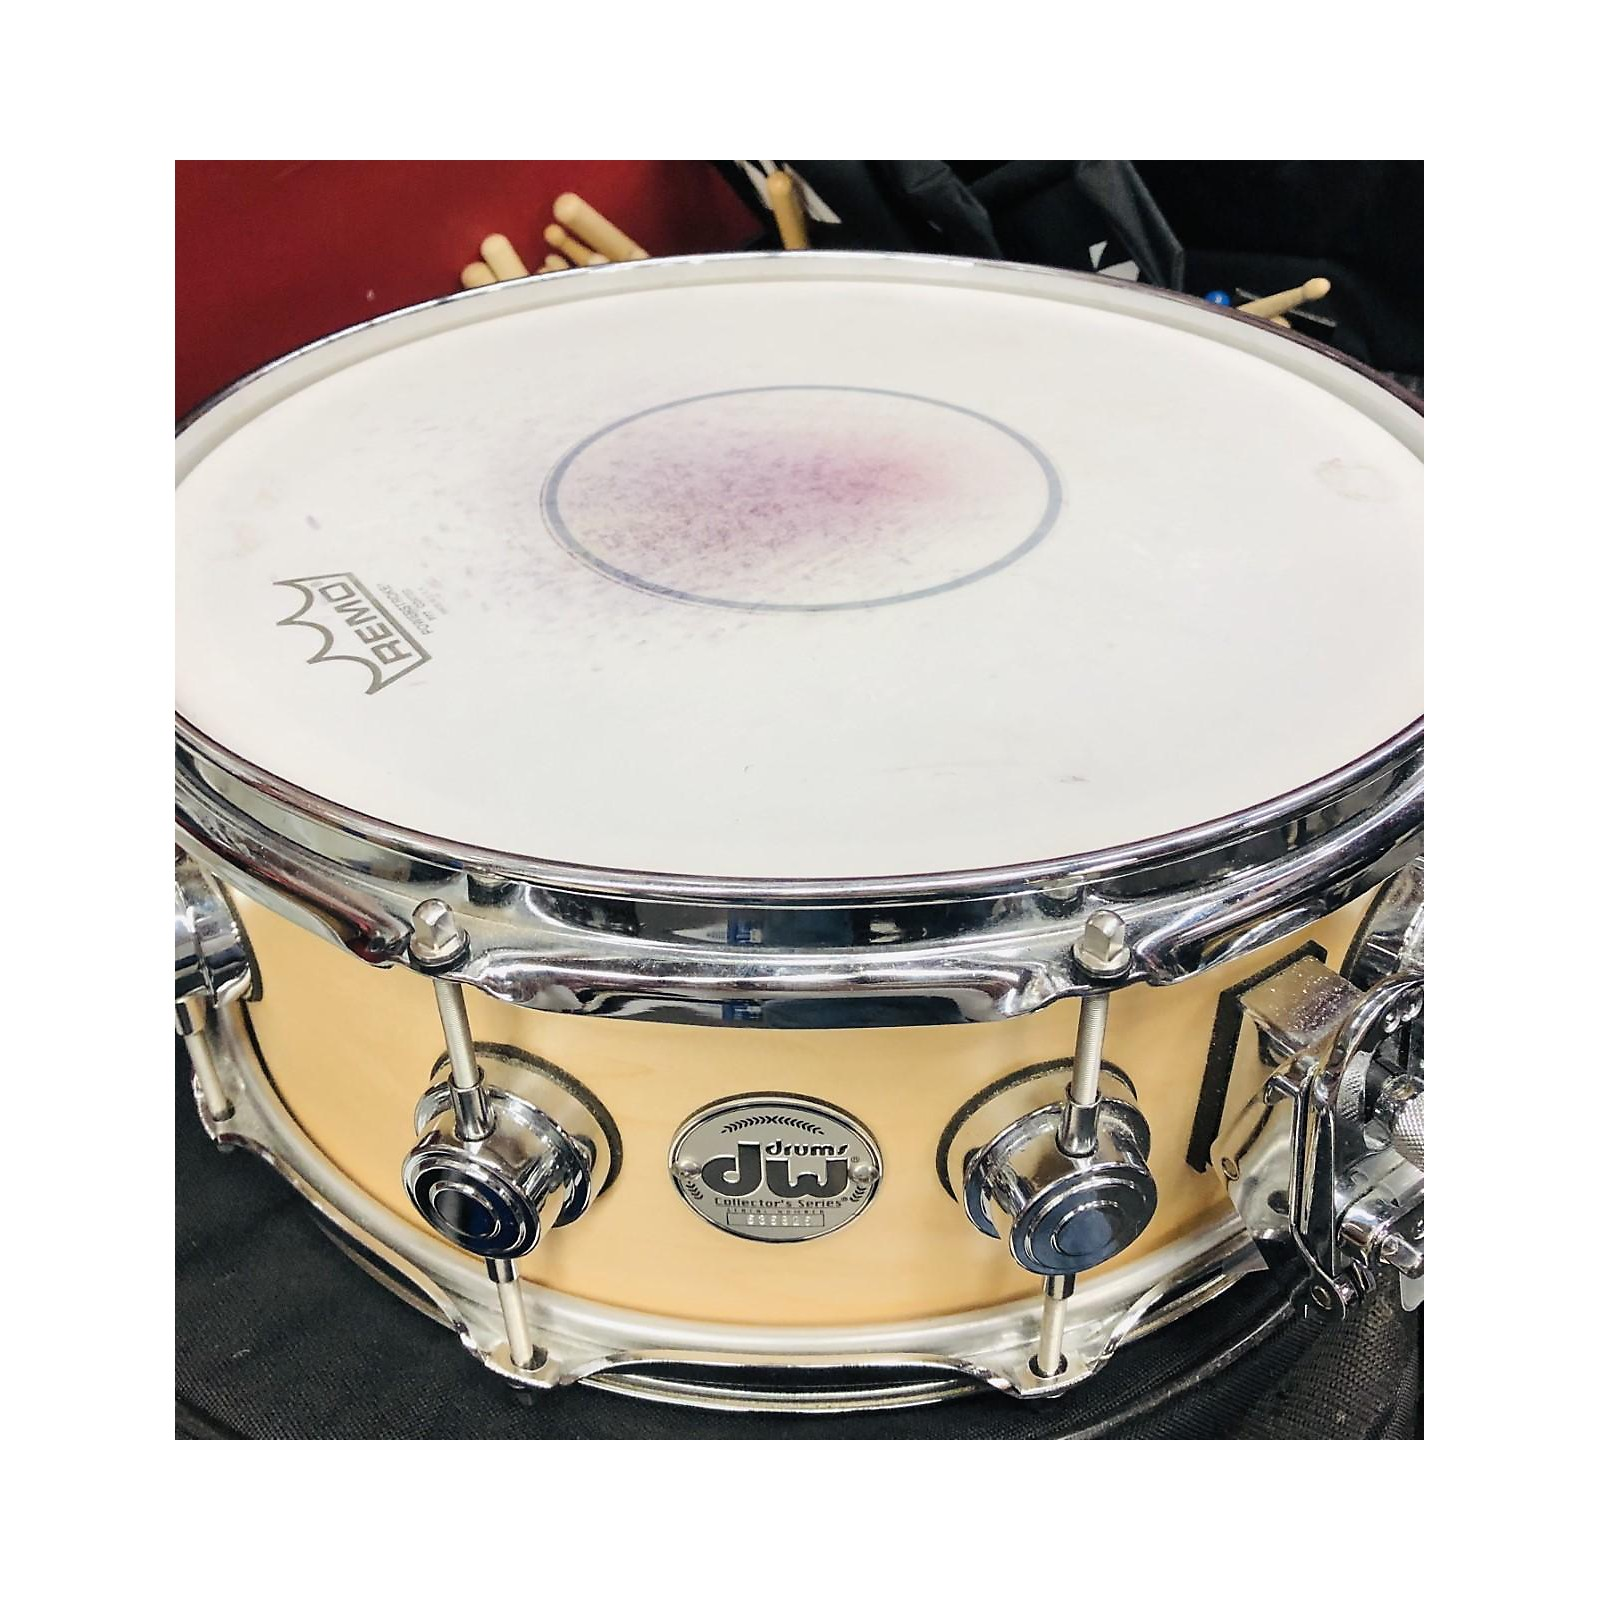 In Store Used Used Dw Collectors Series Snare 14X5.5 Collectors Drum Natural